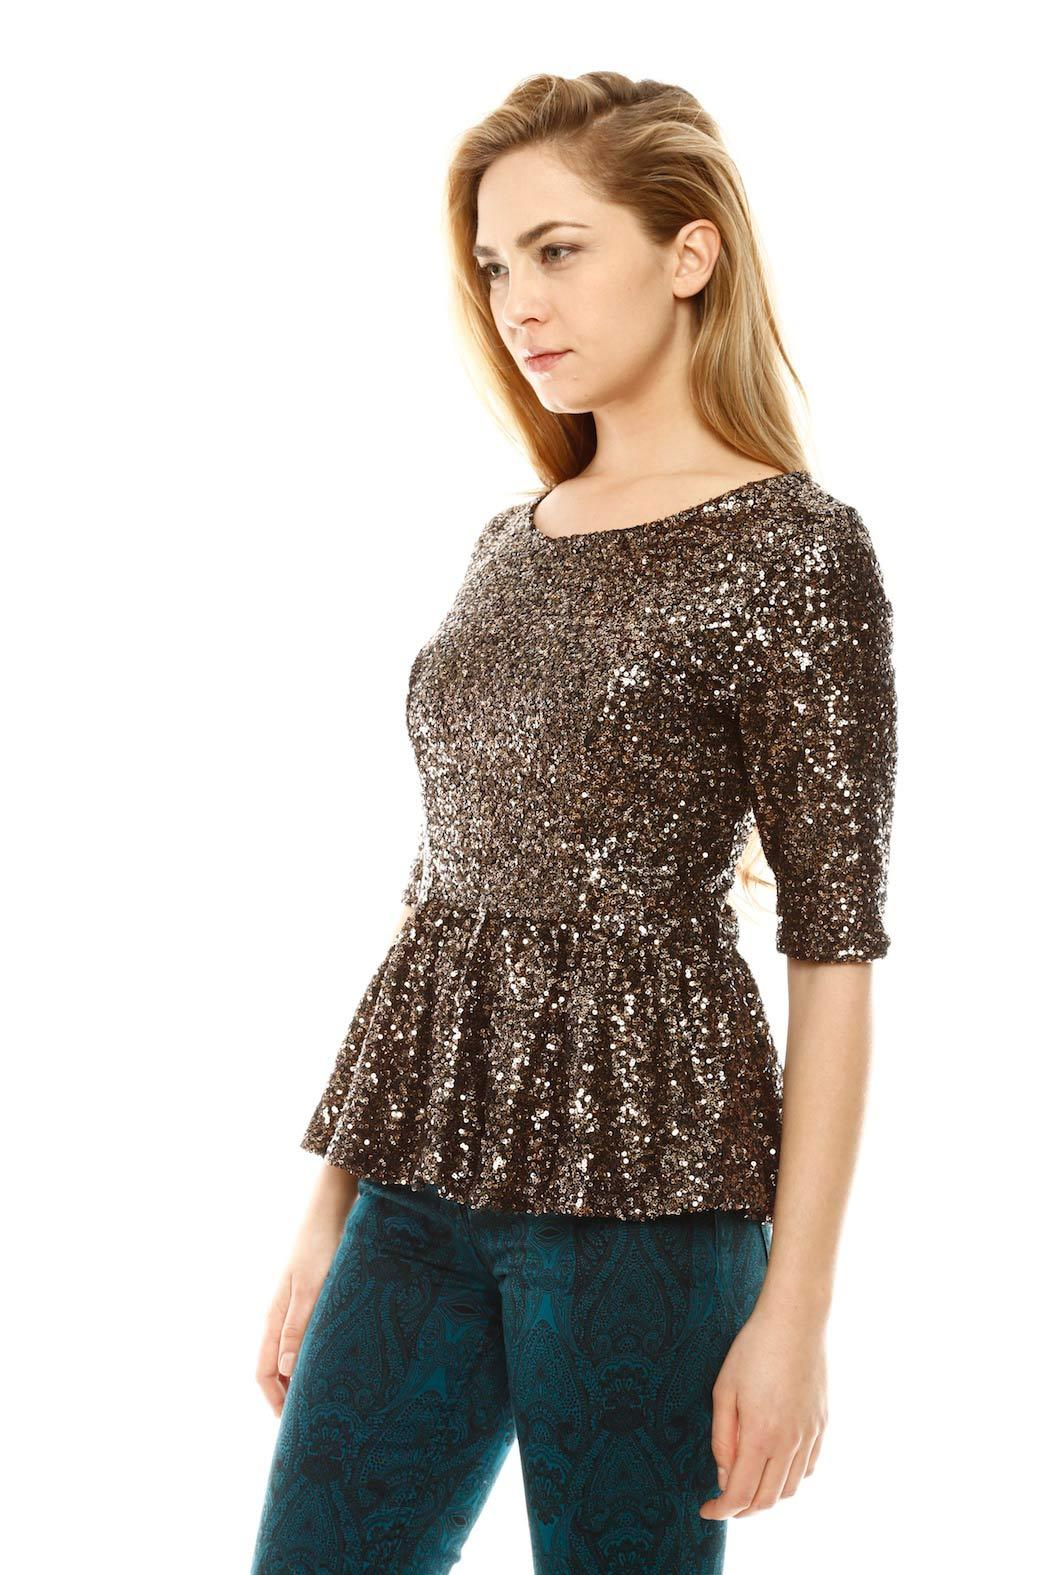 Hommage Sequin Peplum Top from Miami by Prinzzesa — Shoptiques